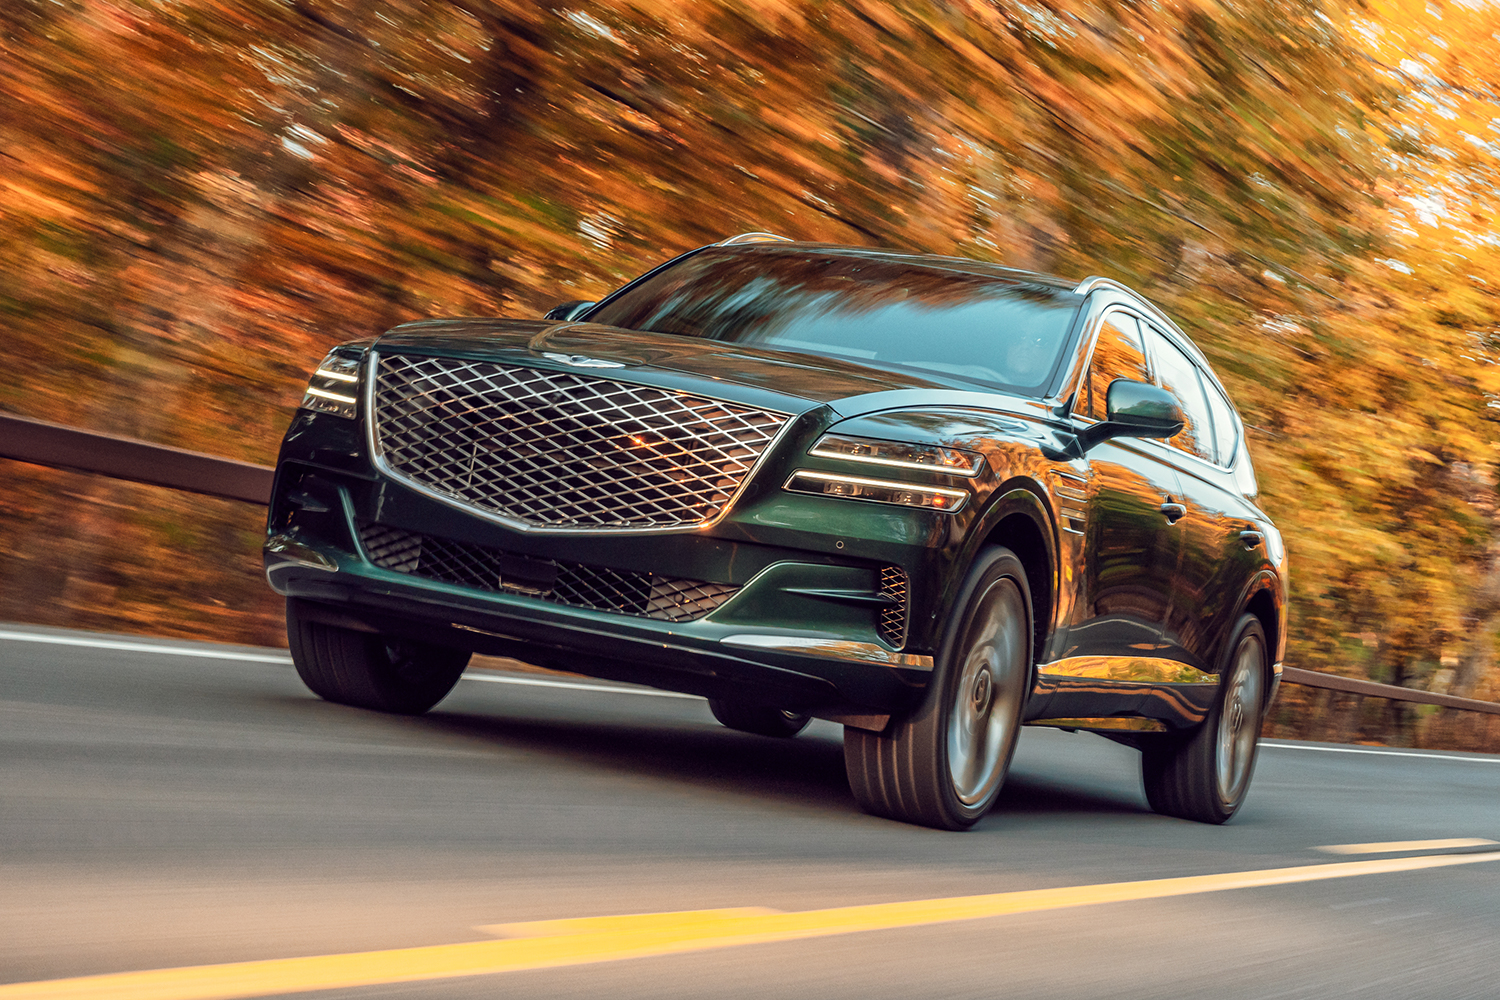 The 2021 Genesis GV80 SUV driving past trees with fall foliage